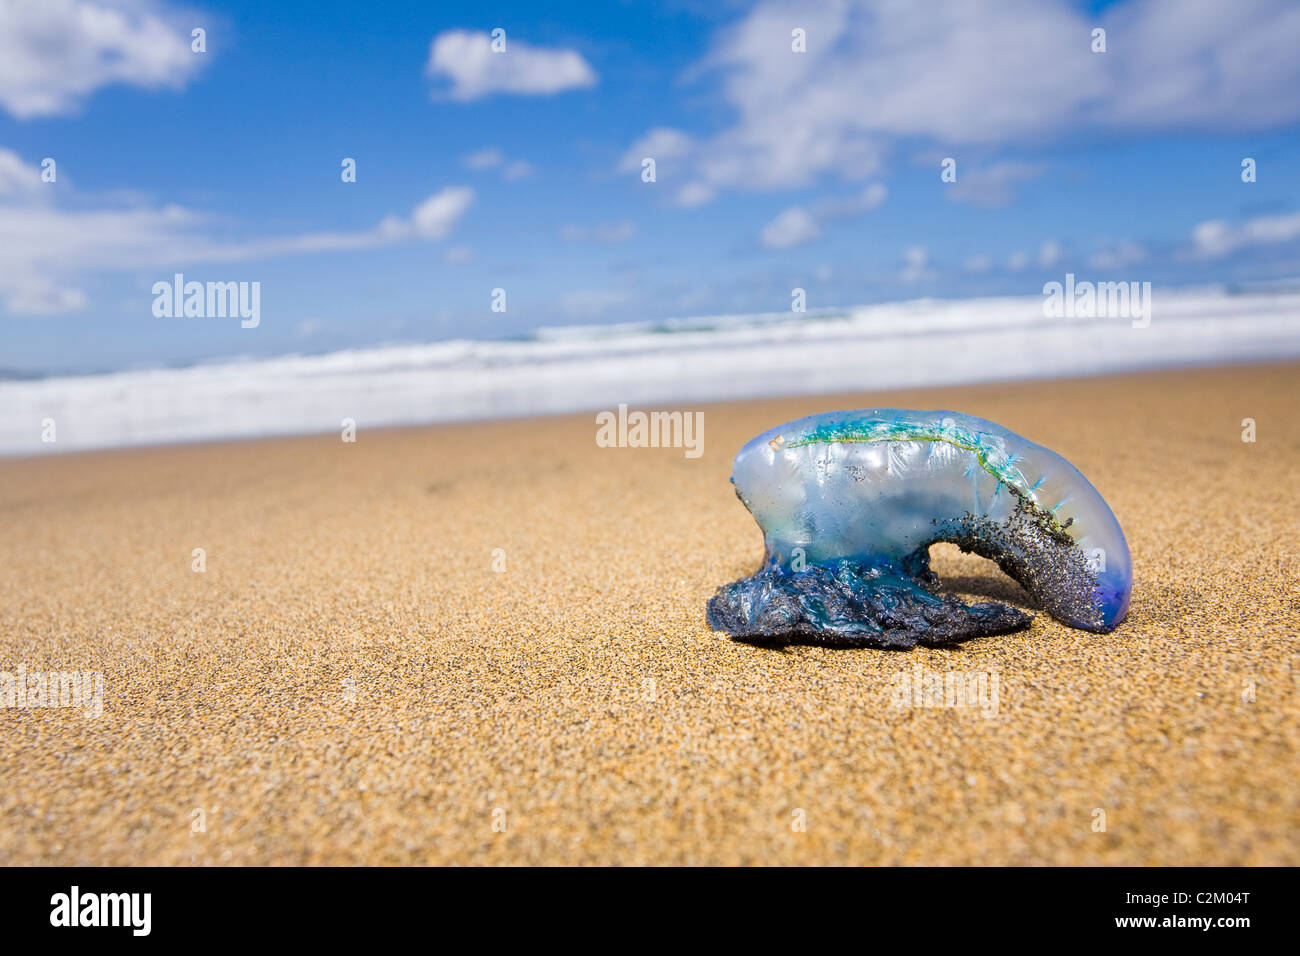 Stranded Portuguese Man o'War on the beach in Las Canteras Beach, Gran Canaria, Spain. - Stock Image